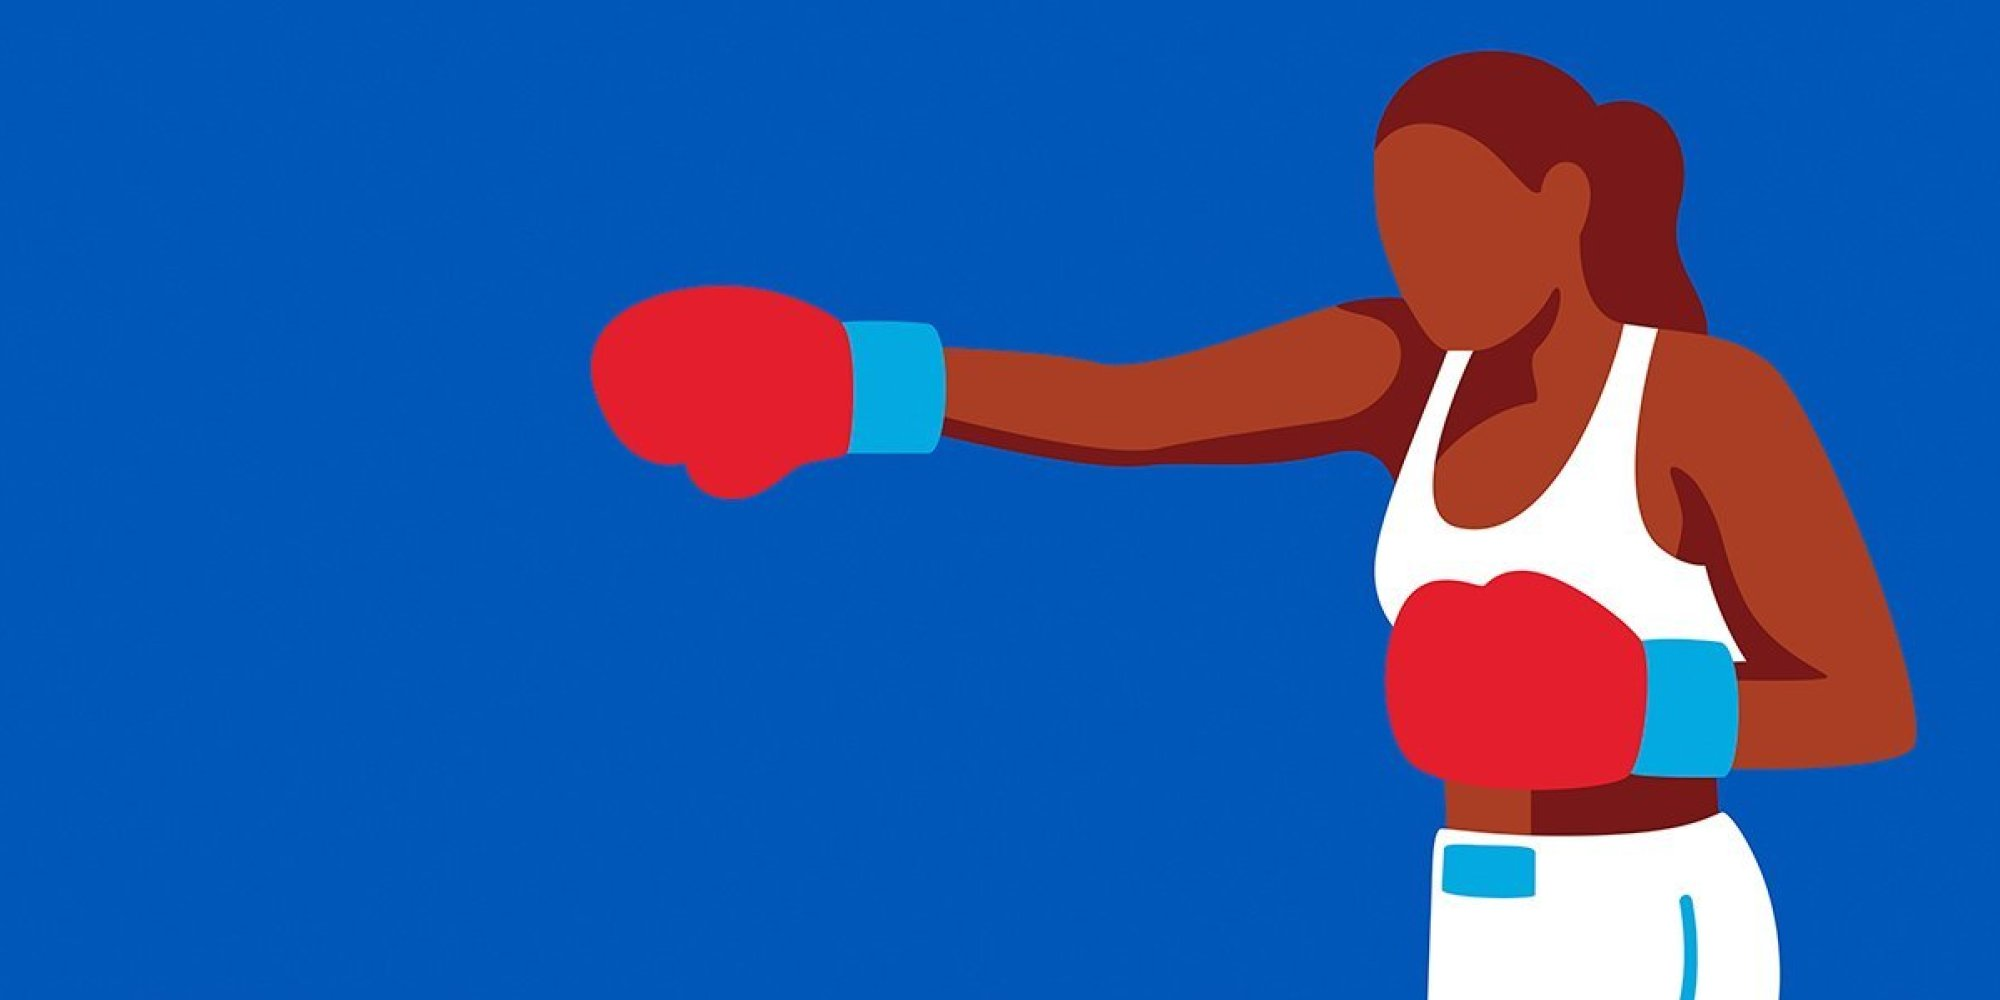 Boxer clipart feud Hillary The The To I'm